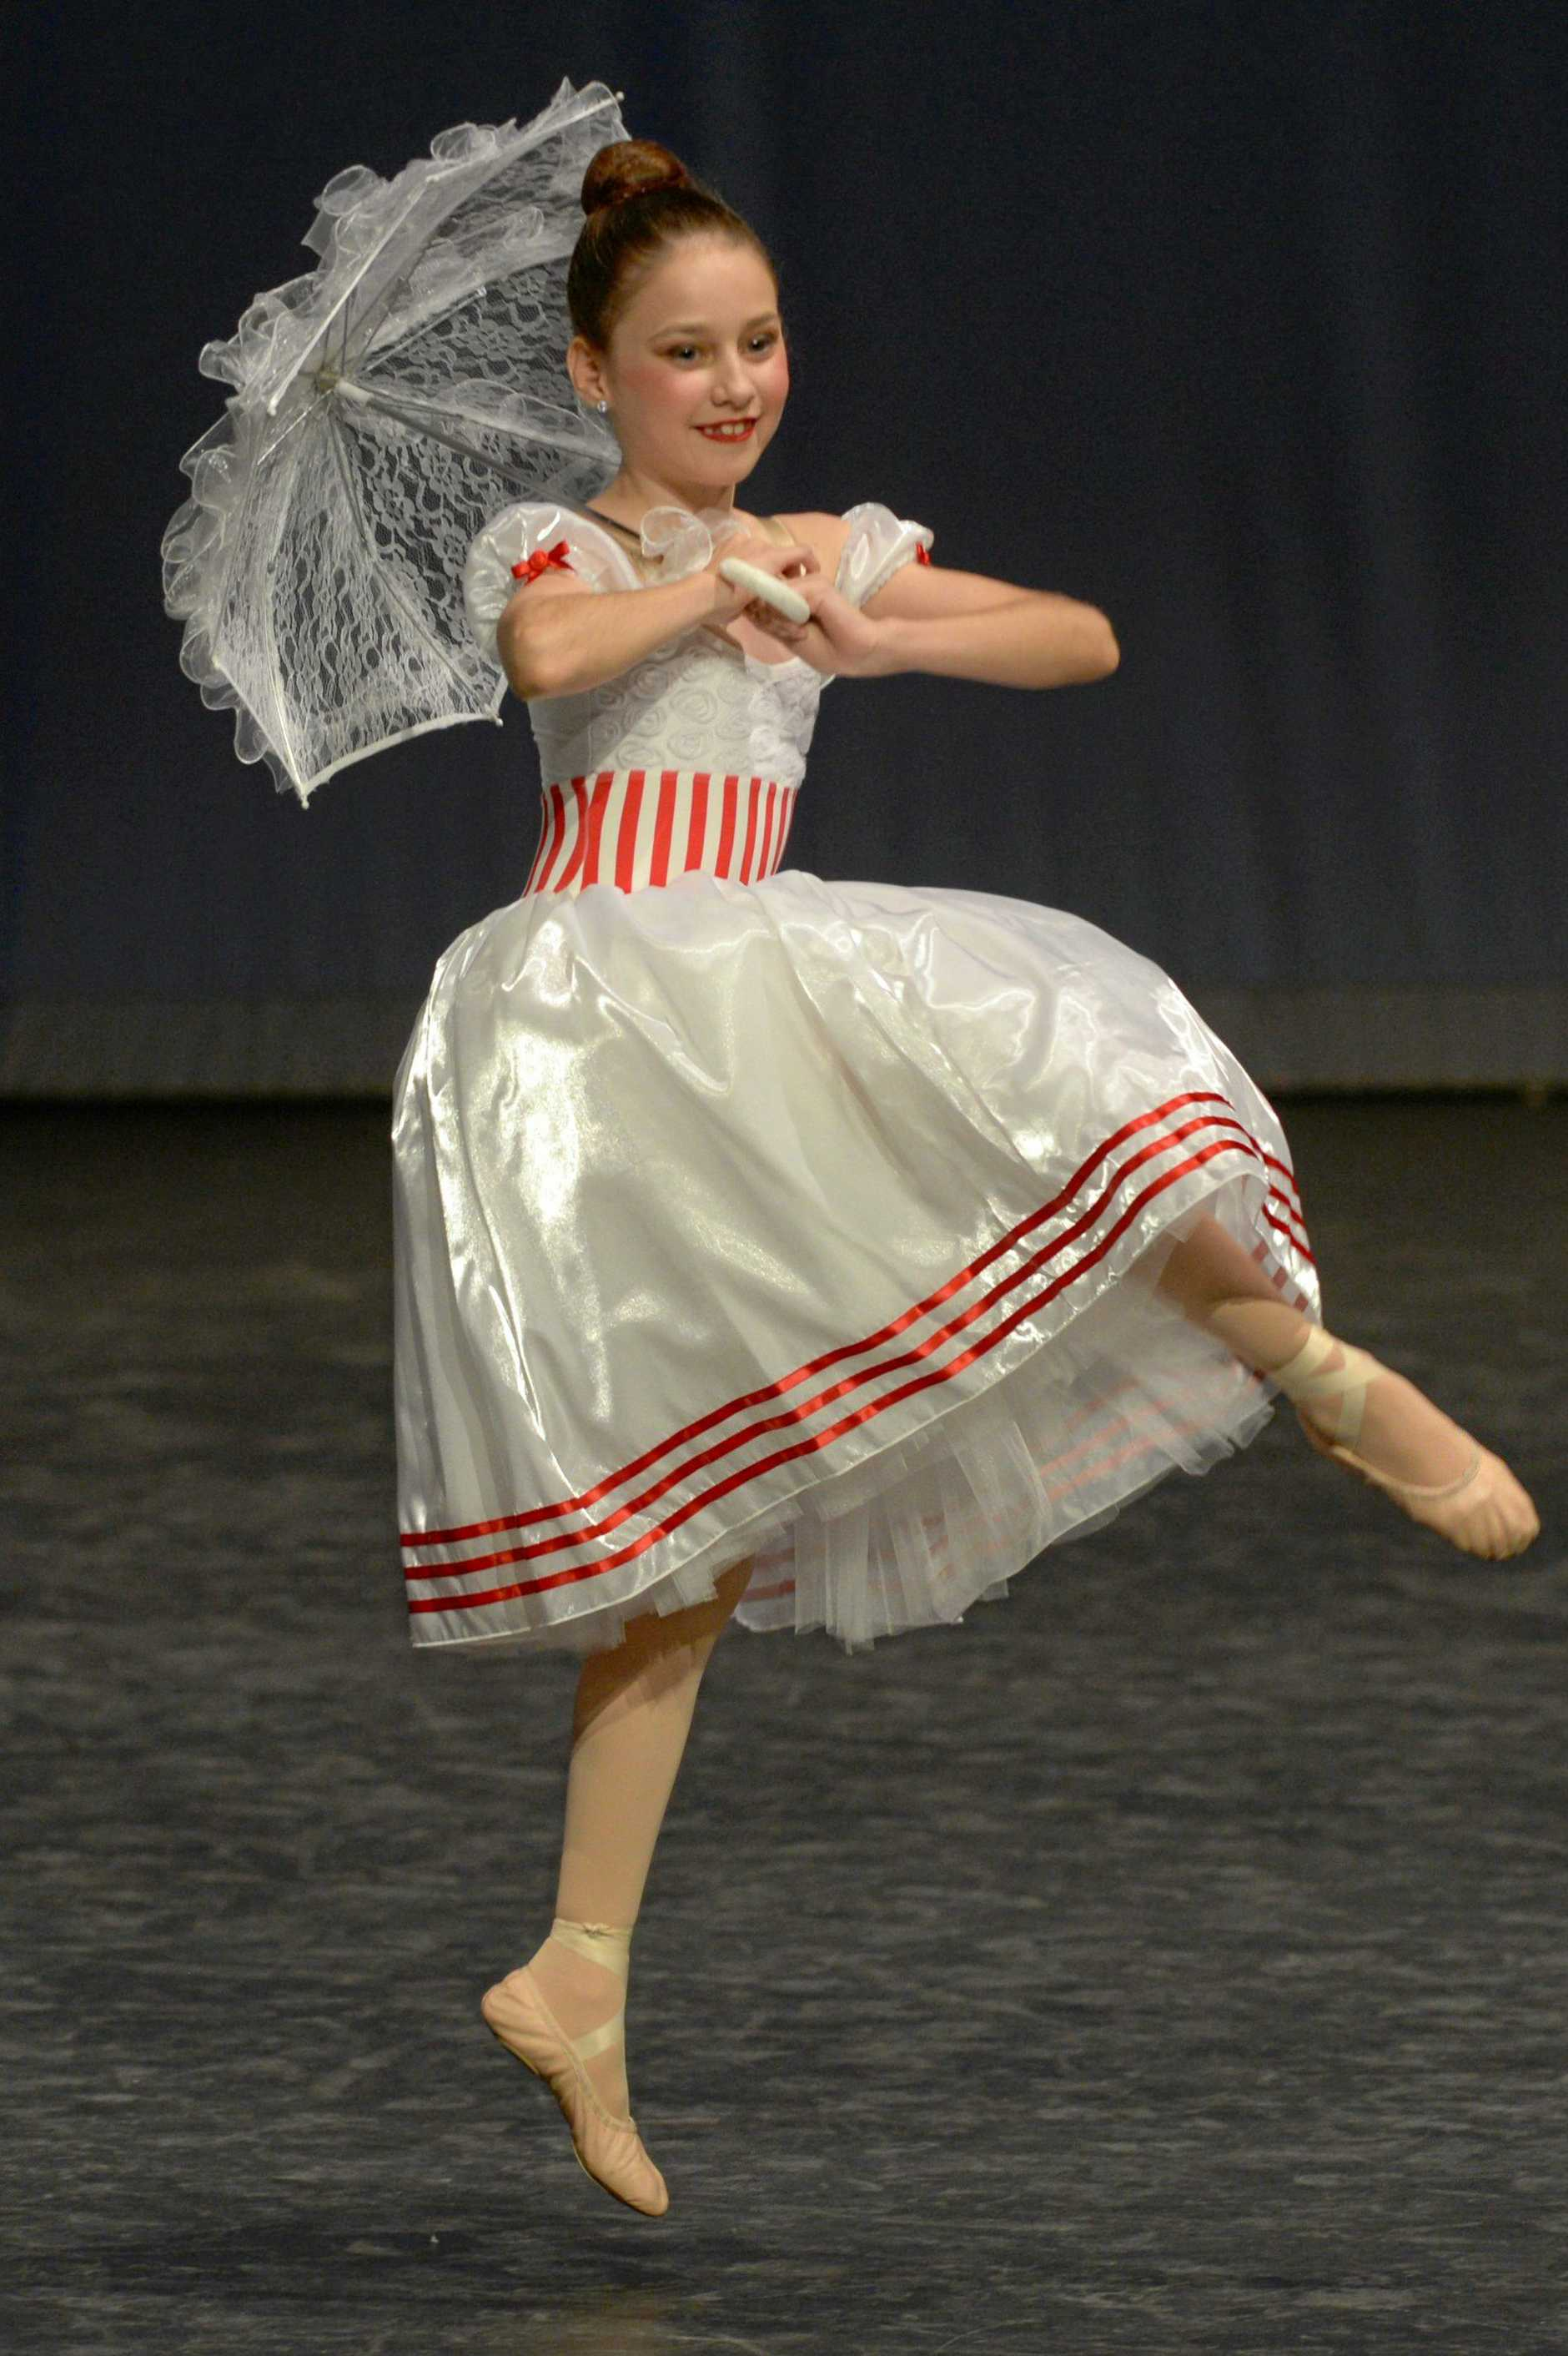 Sierra Chevio in Section 16 - Demi Character or Character Solo 9 and U11 (Jan Leibinger trophy)